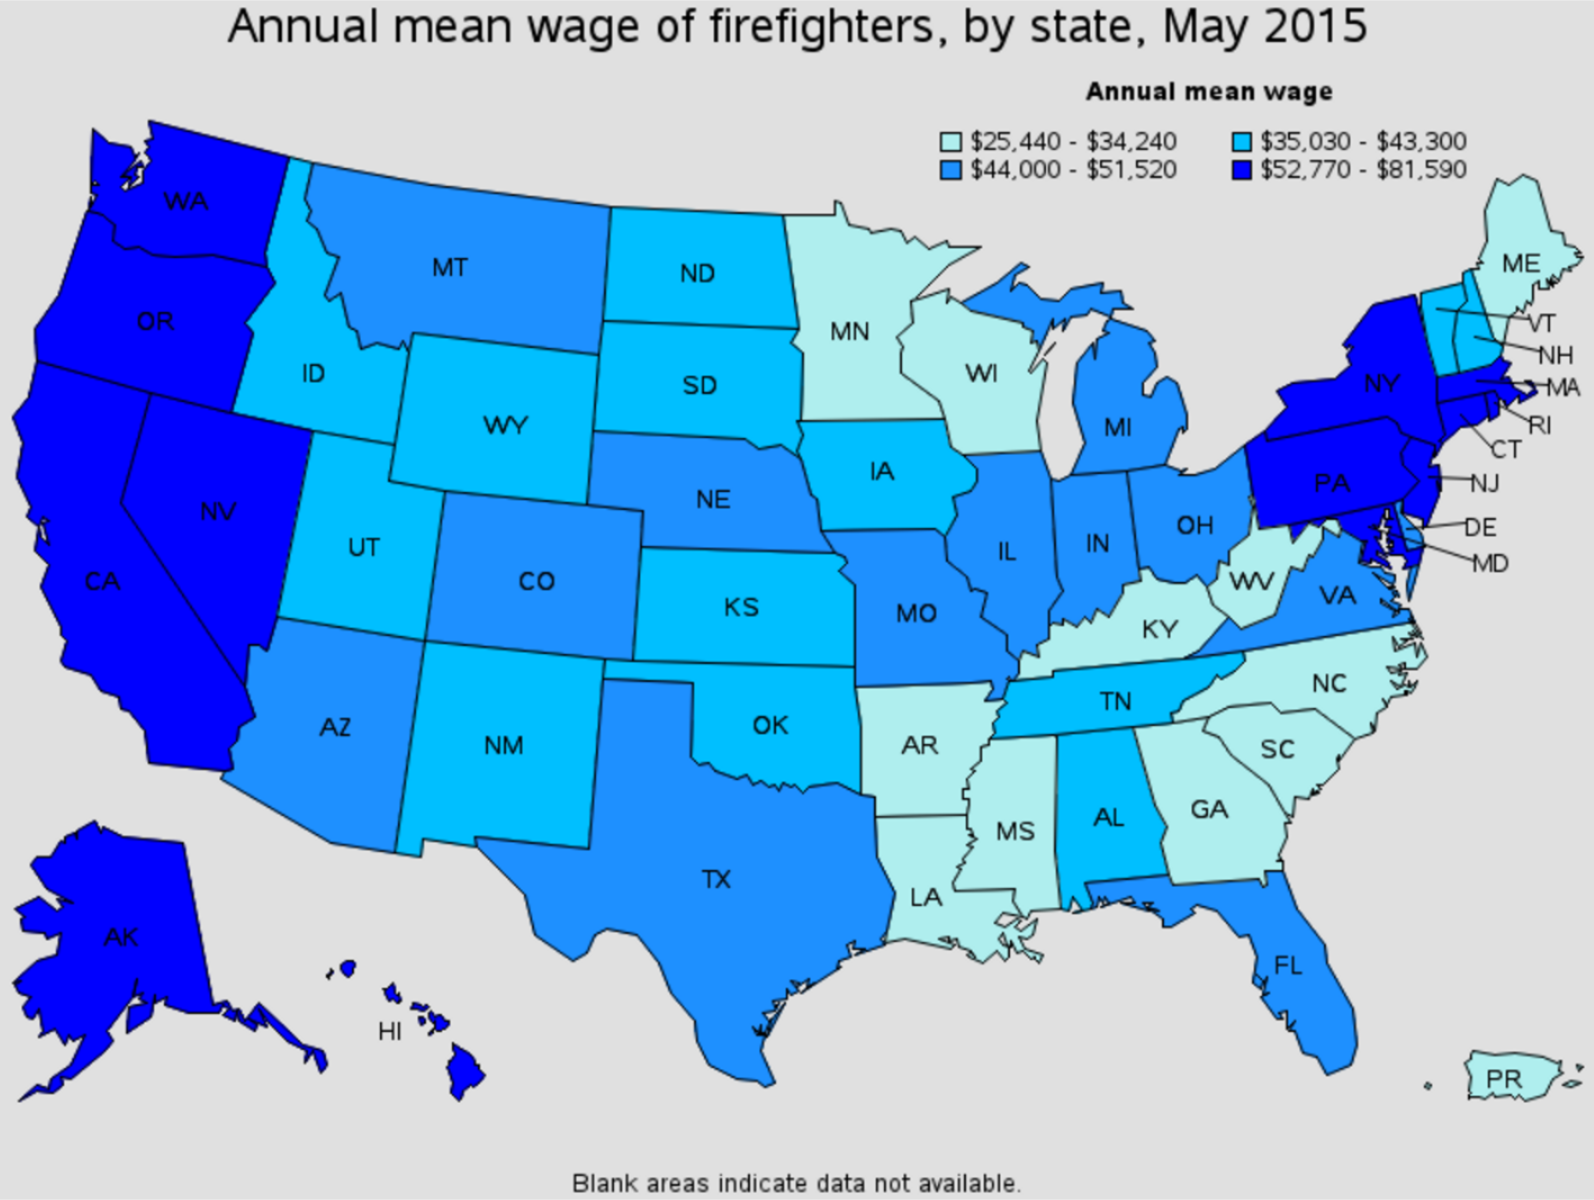 firefighter average salary by state Unalaska Alaska